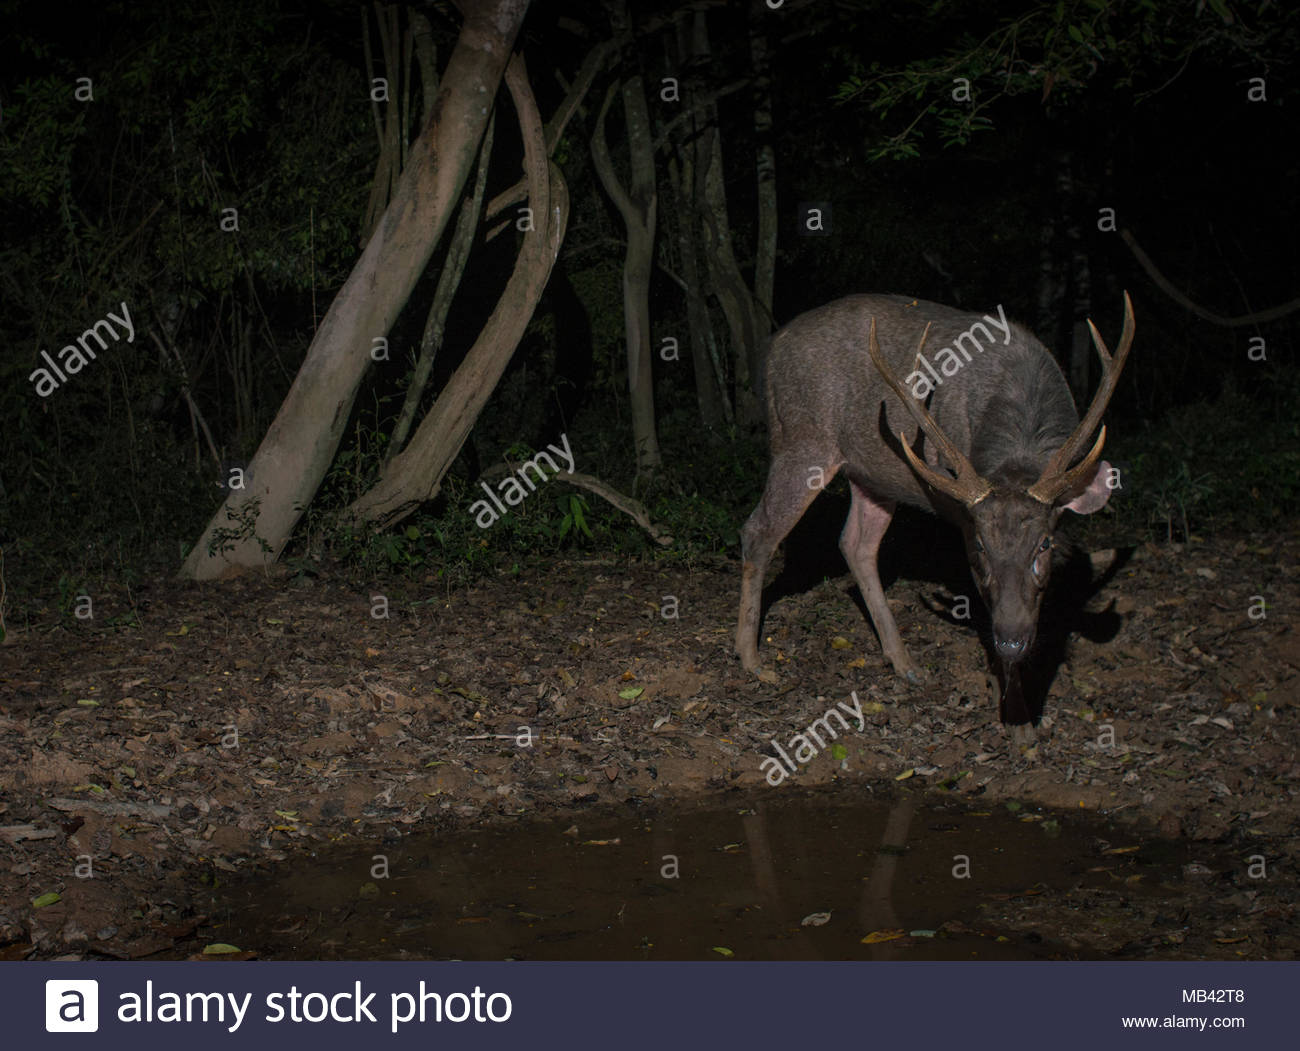 The sambar is a large deer native to the Indian subcontinent, southern China, and Southeast Asia that is listed as Vulnerable on the IUCN Red List - Stock Image